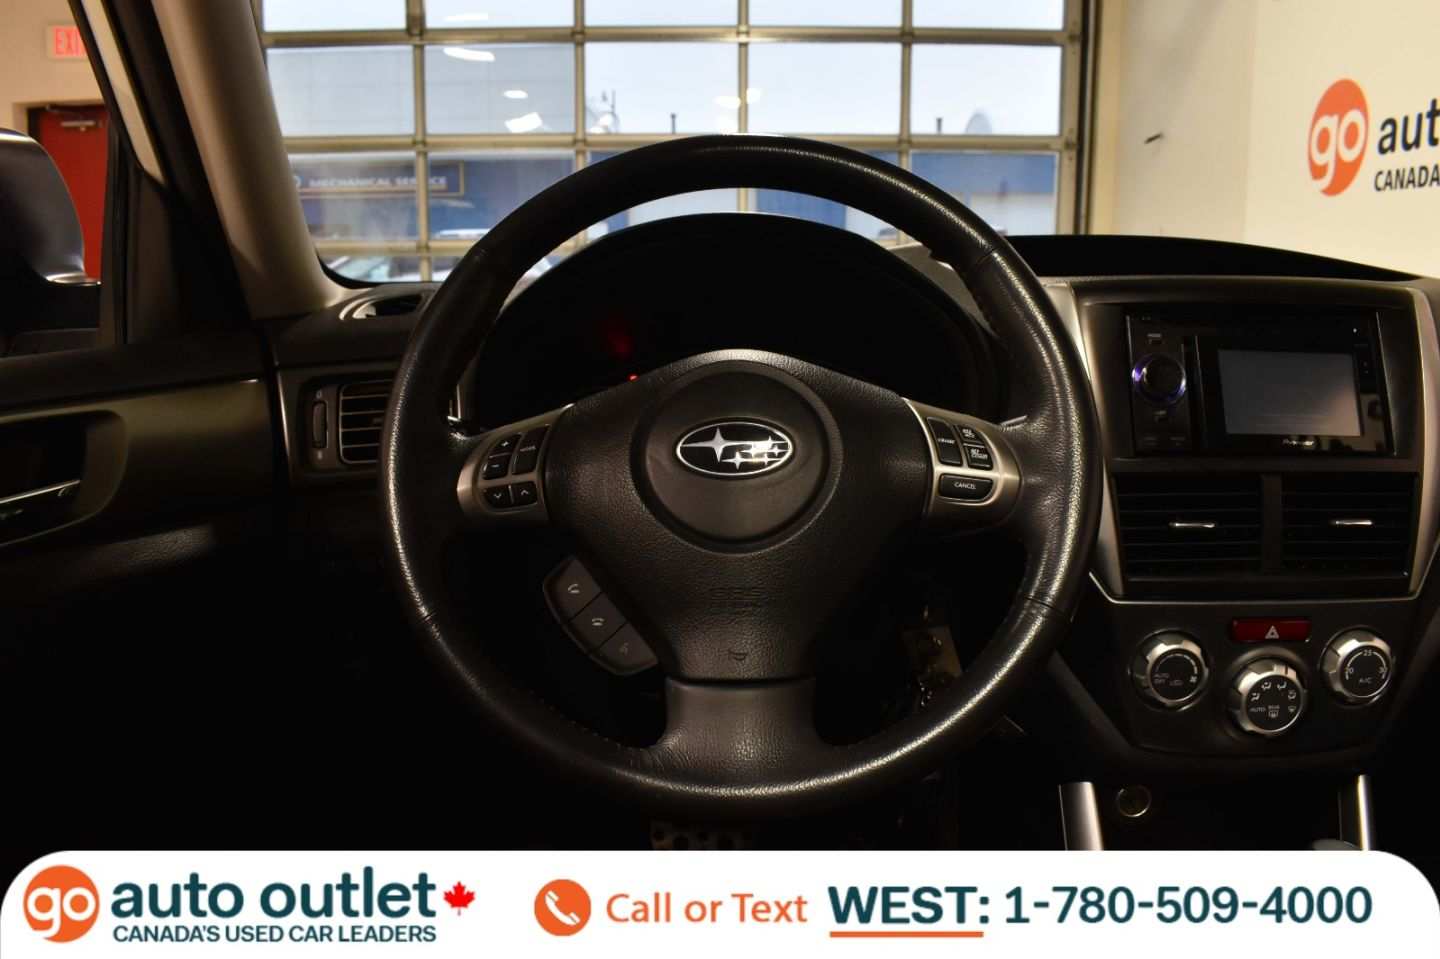 2011 Subaru Forester X Limited for sale in Edmonton, Alberta